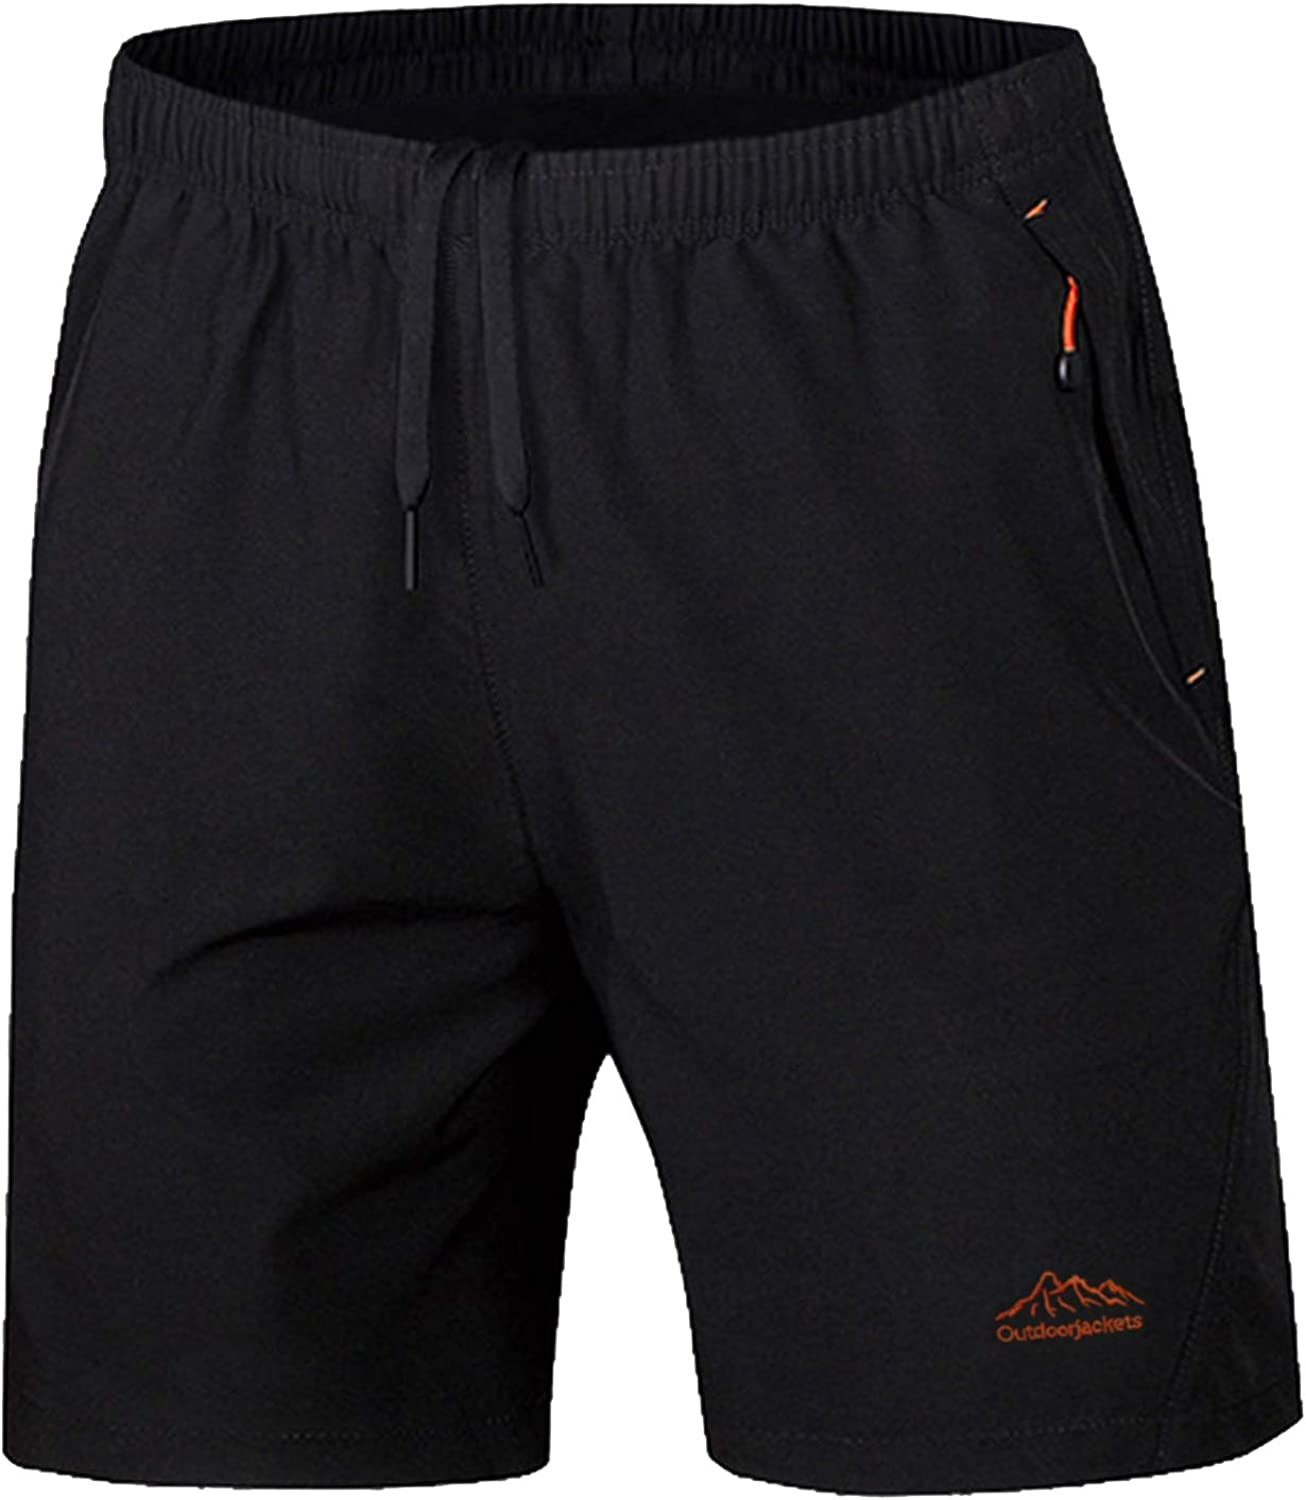 KEFITEVD Mens Workout Shorts Quick Dry Running Shorts Lightweight Outdoor Shorts with Pockets